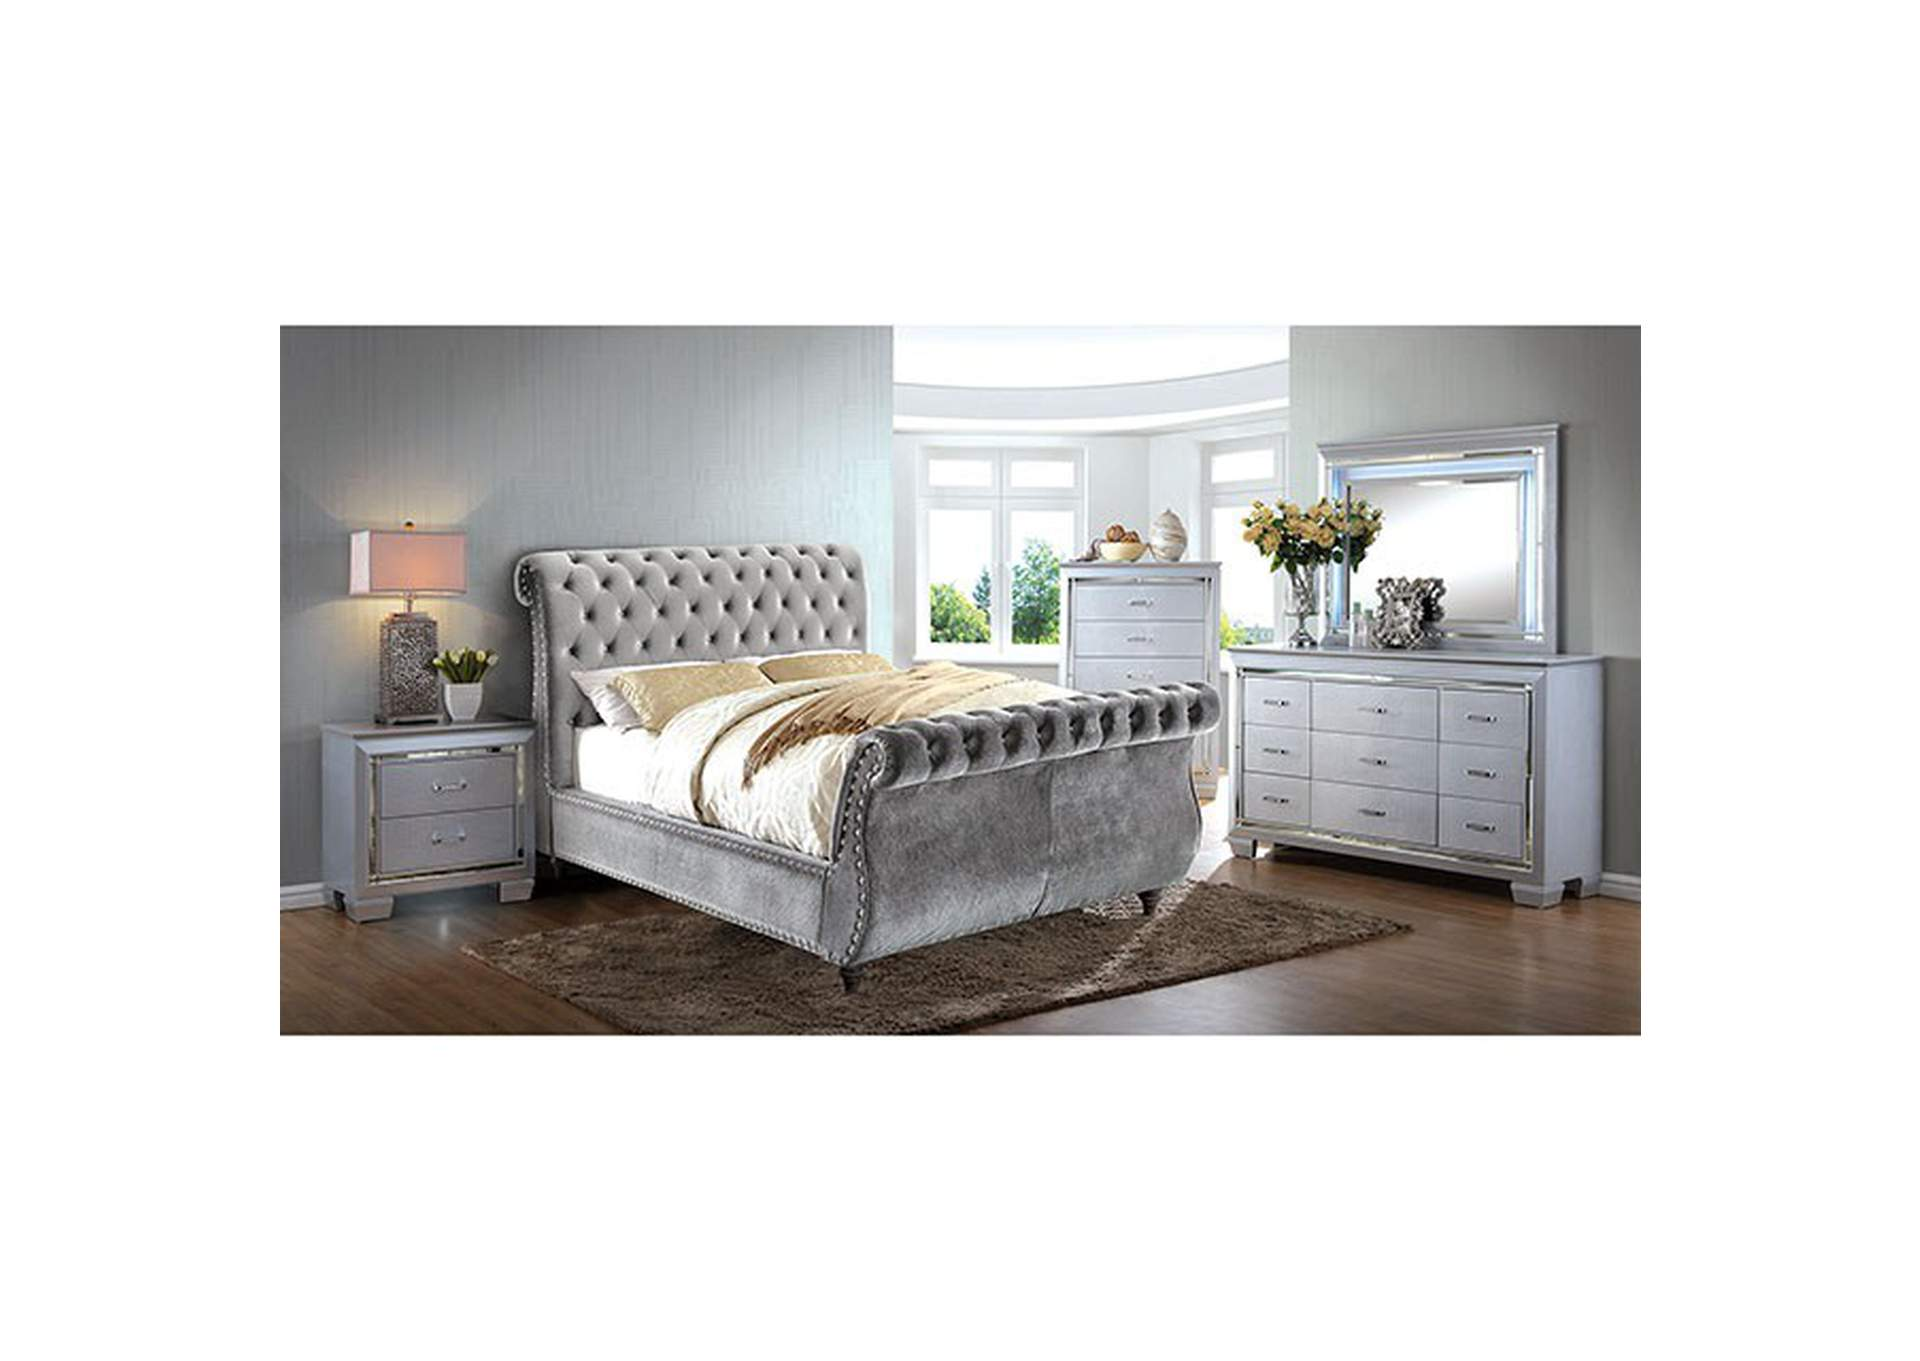 Noella Gray Upholstered Queen Sleigh Bed,Furniture of America